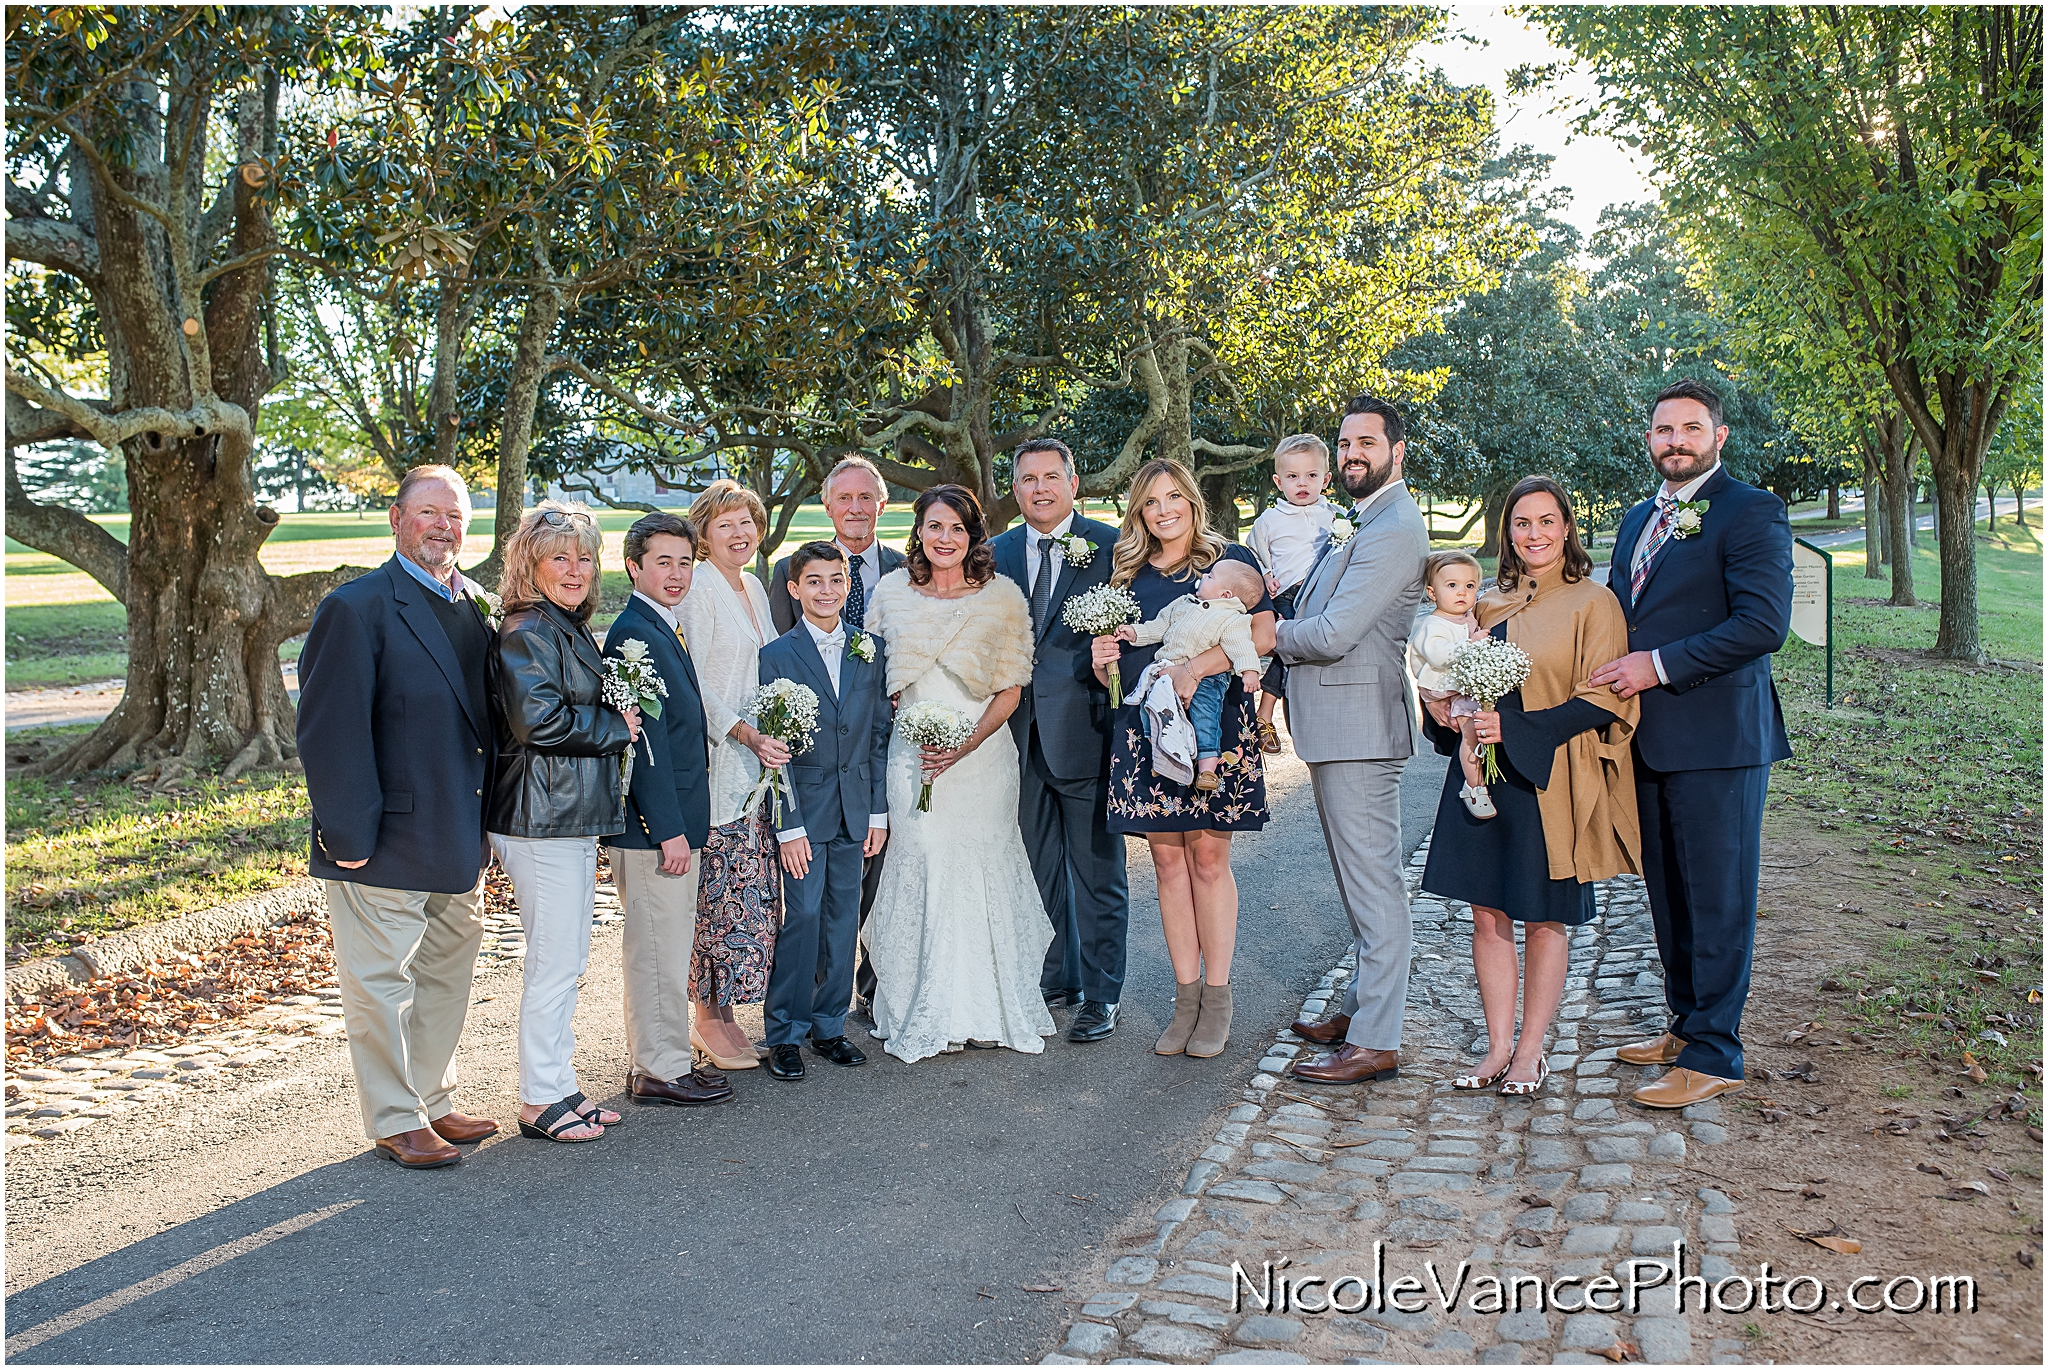 The bride and groom pose with all the guests in attendance at Maymont Park in Richmond, Virginia.